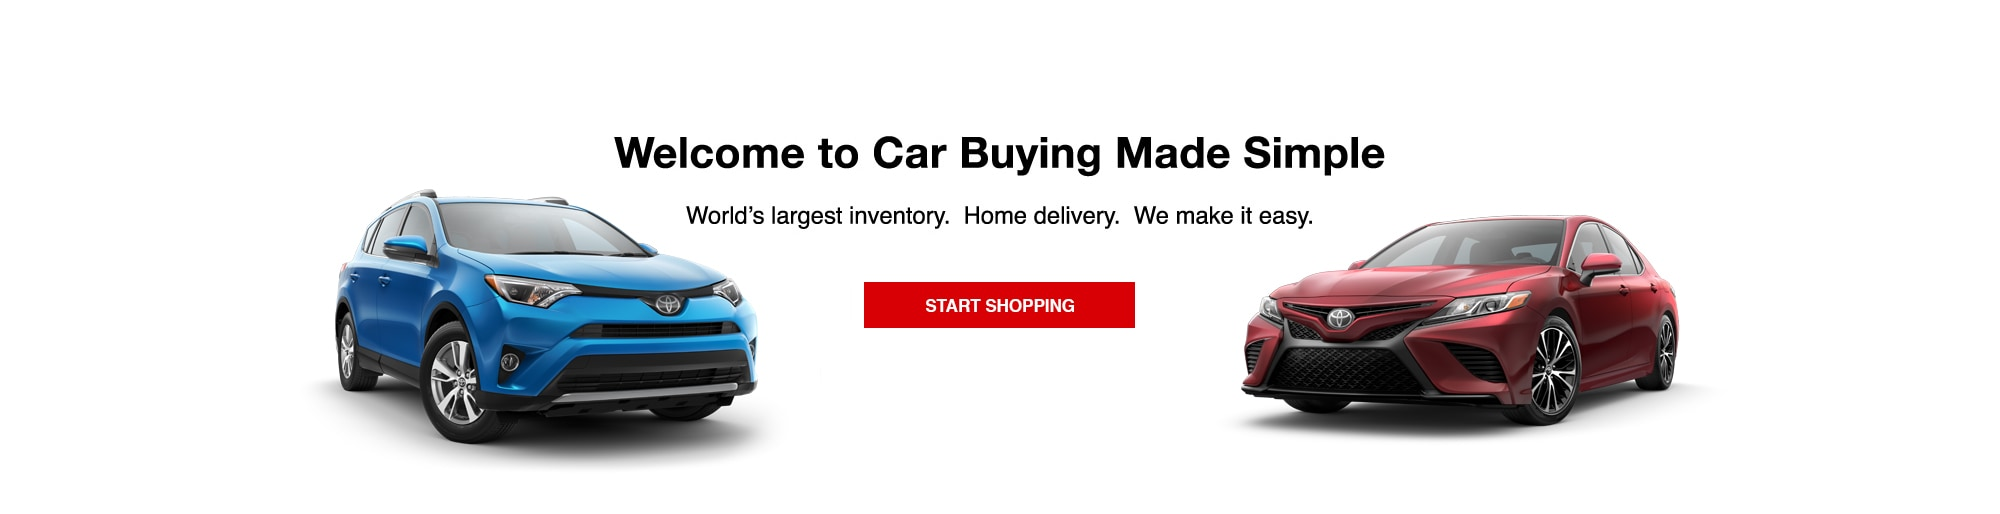 america s largest selection of new used and certified pre owned vehicles longo toyota dealership serving los angeles pasadena orange county